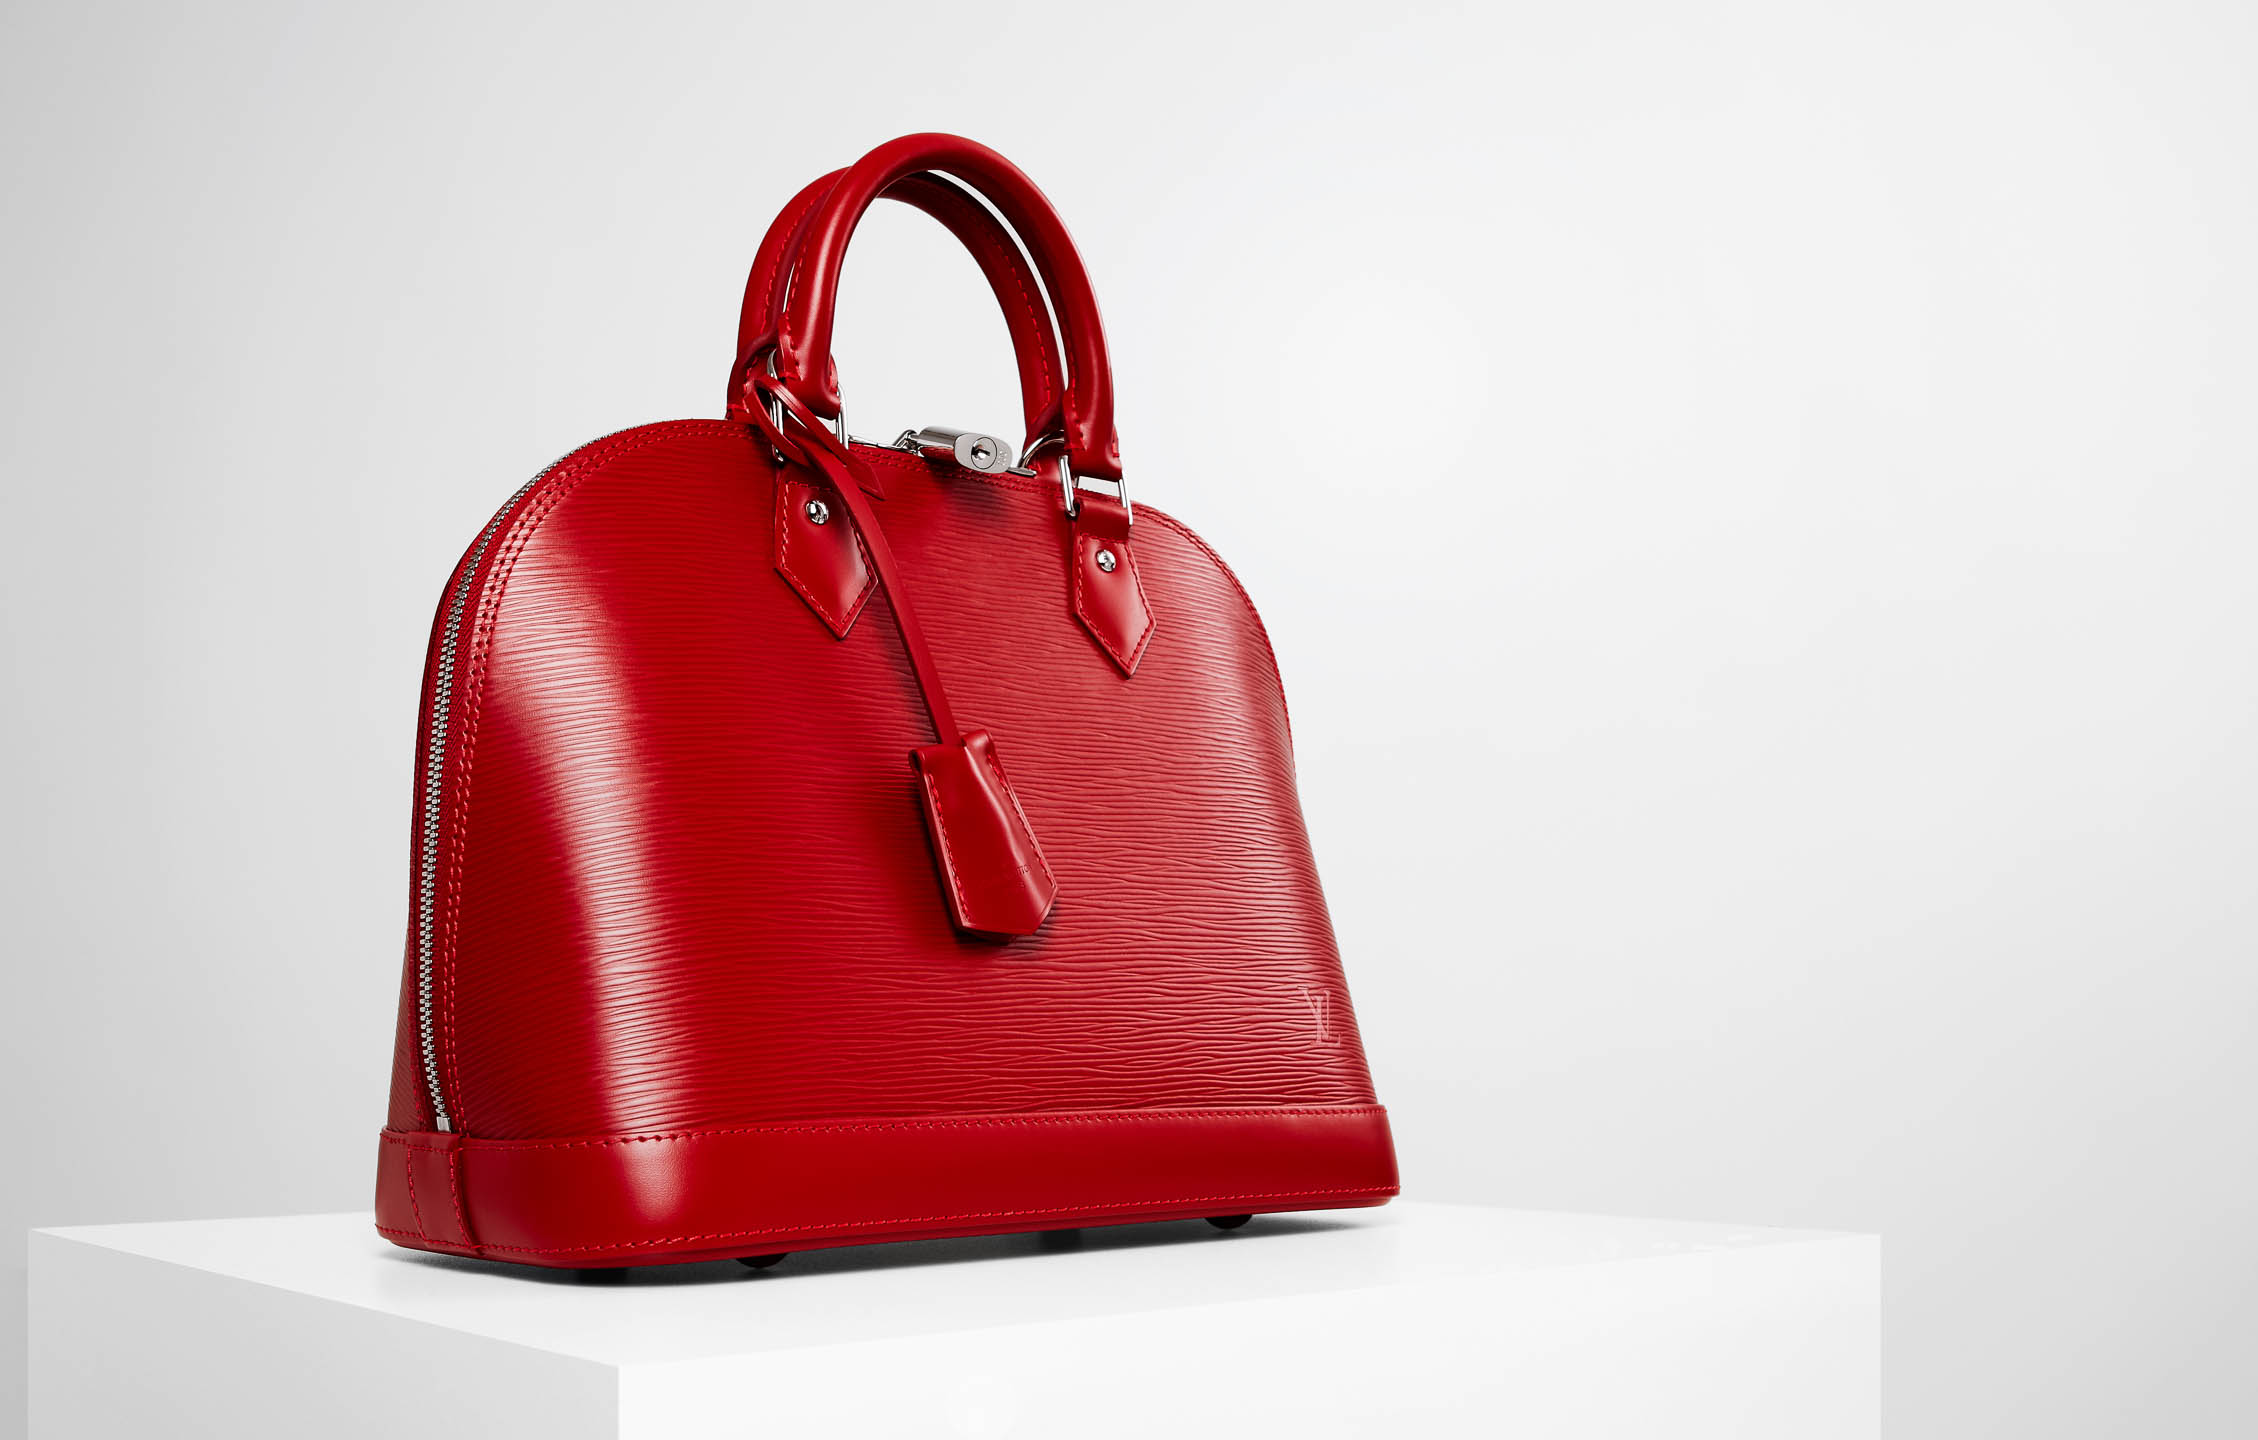 Louis Vuitton red Alma handbag